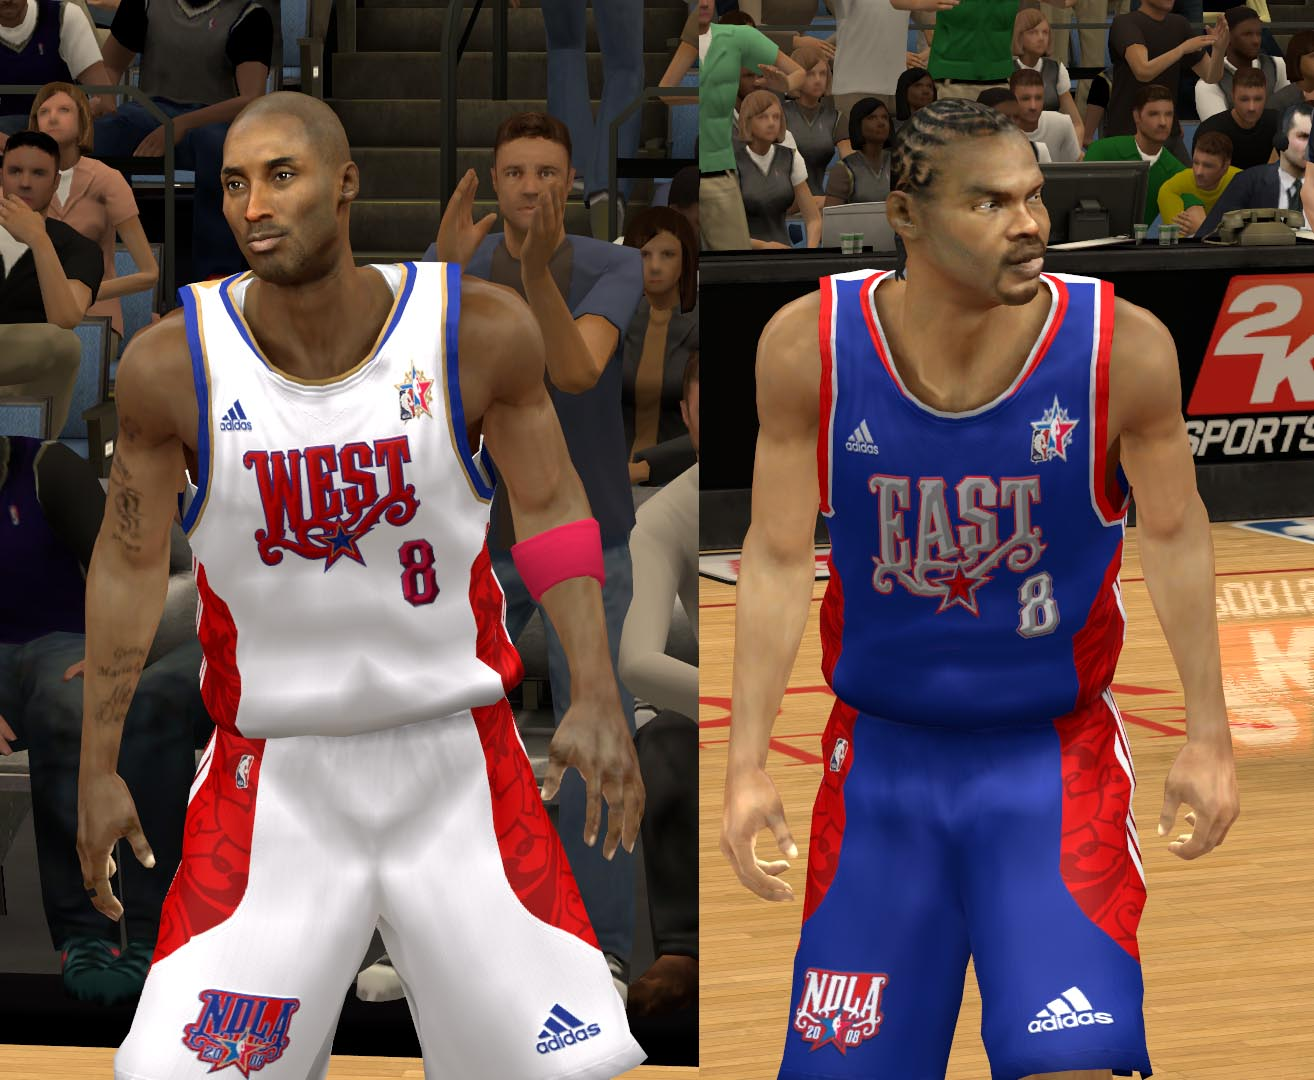 2008 All-Star Jerseys 2K13